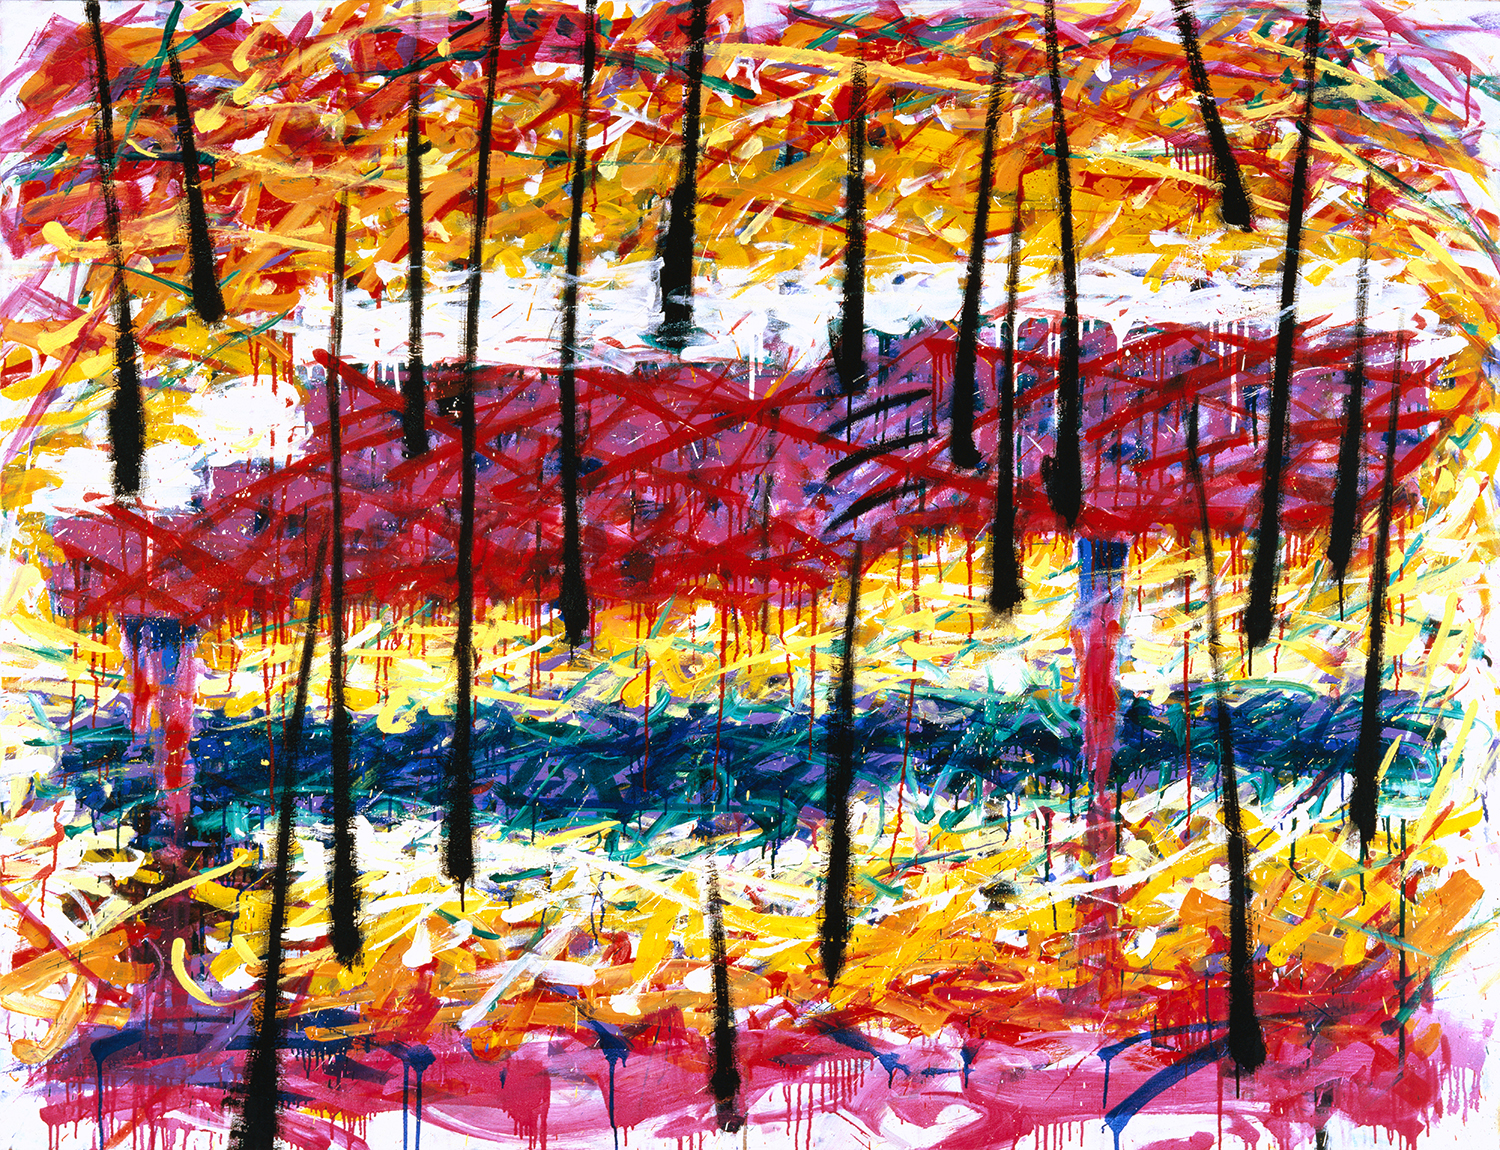 Piano In The Rain   oil and varnish on canvas   64″ x 96″   1993